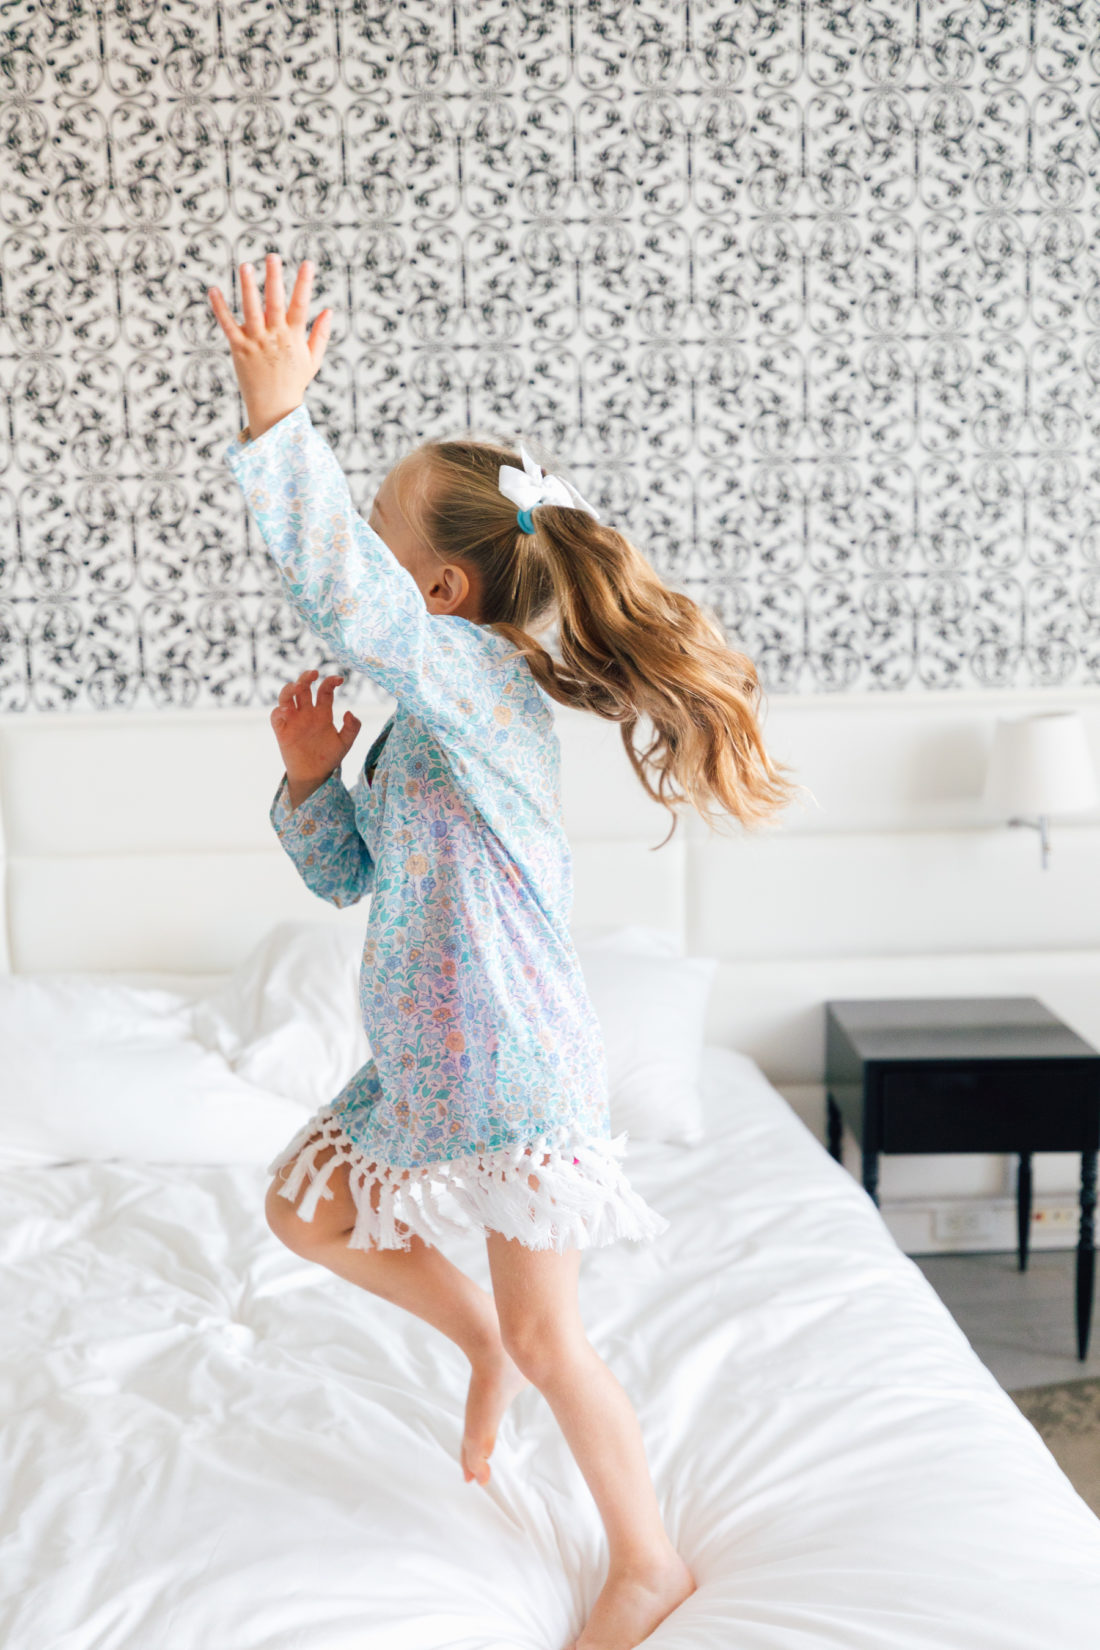 Marlowe Martino jumps and twirls on the bed in Miami wearing her Happily Eva After x Masala Baby floral fringe tunic